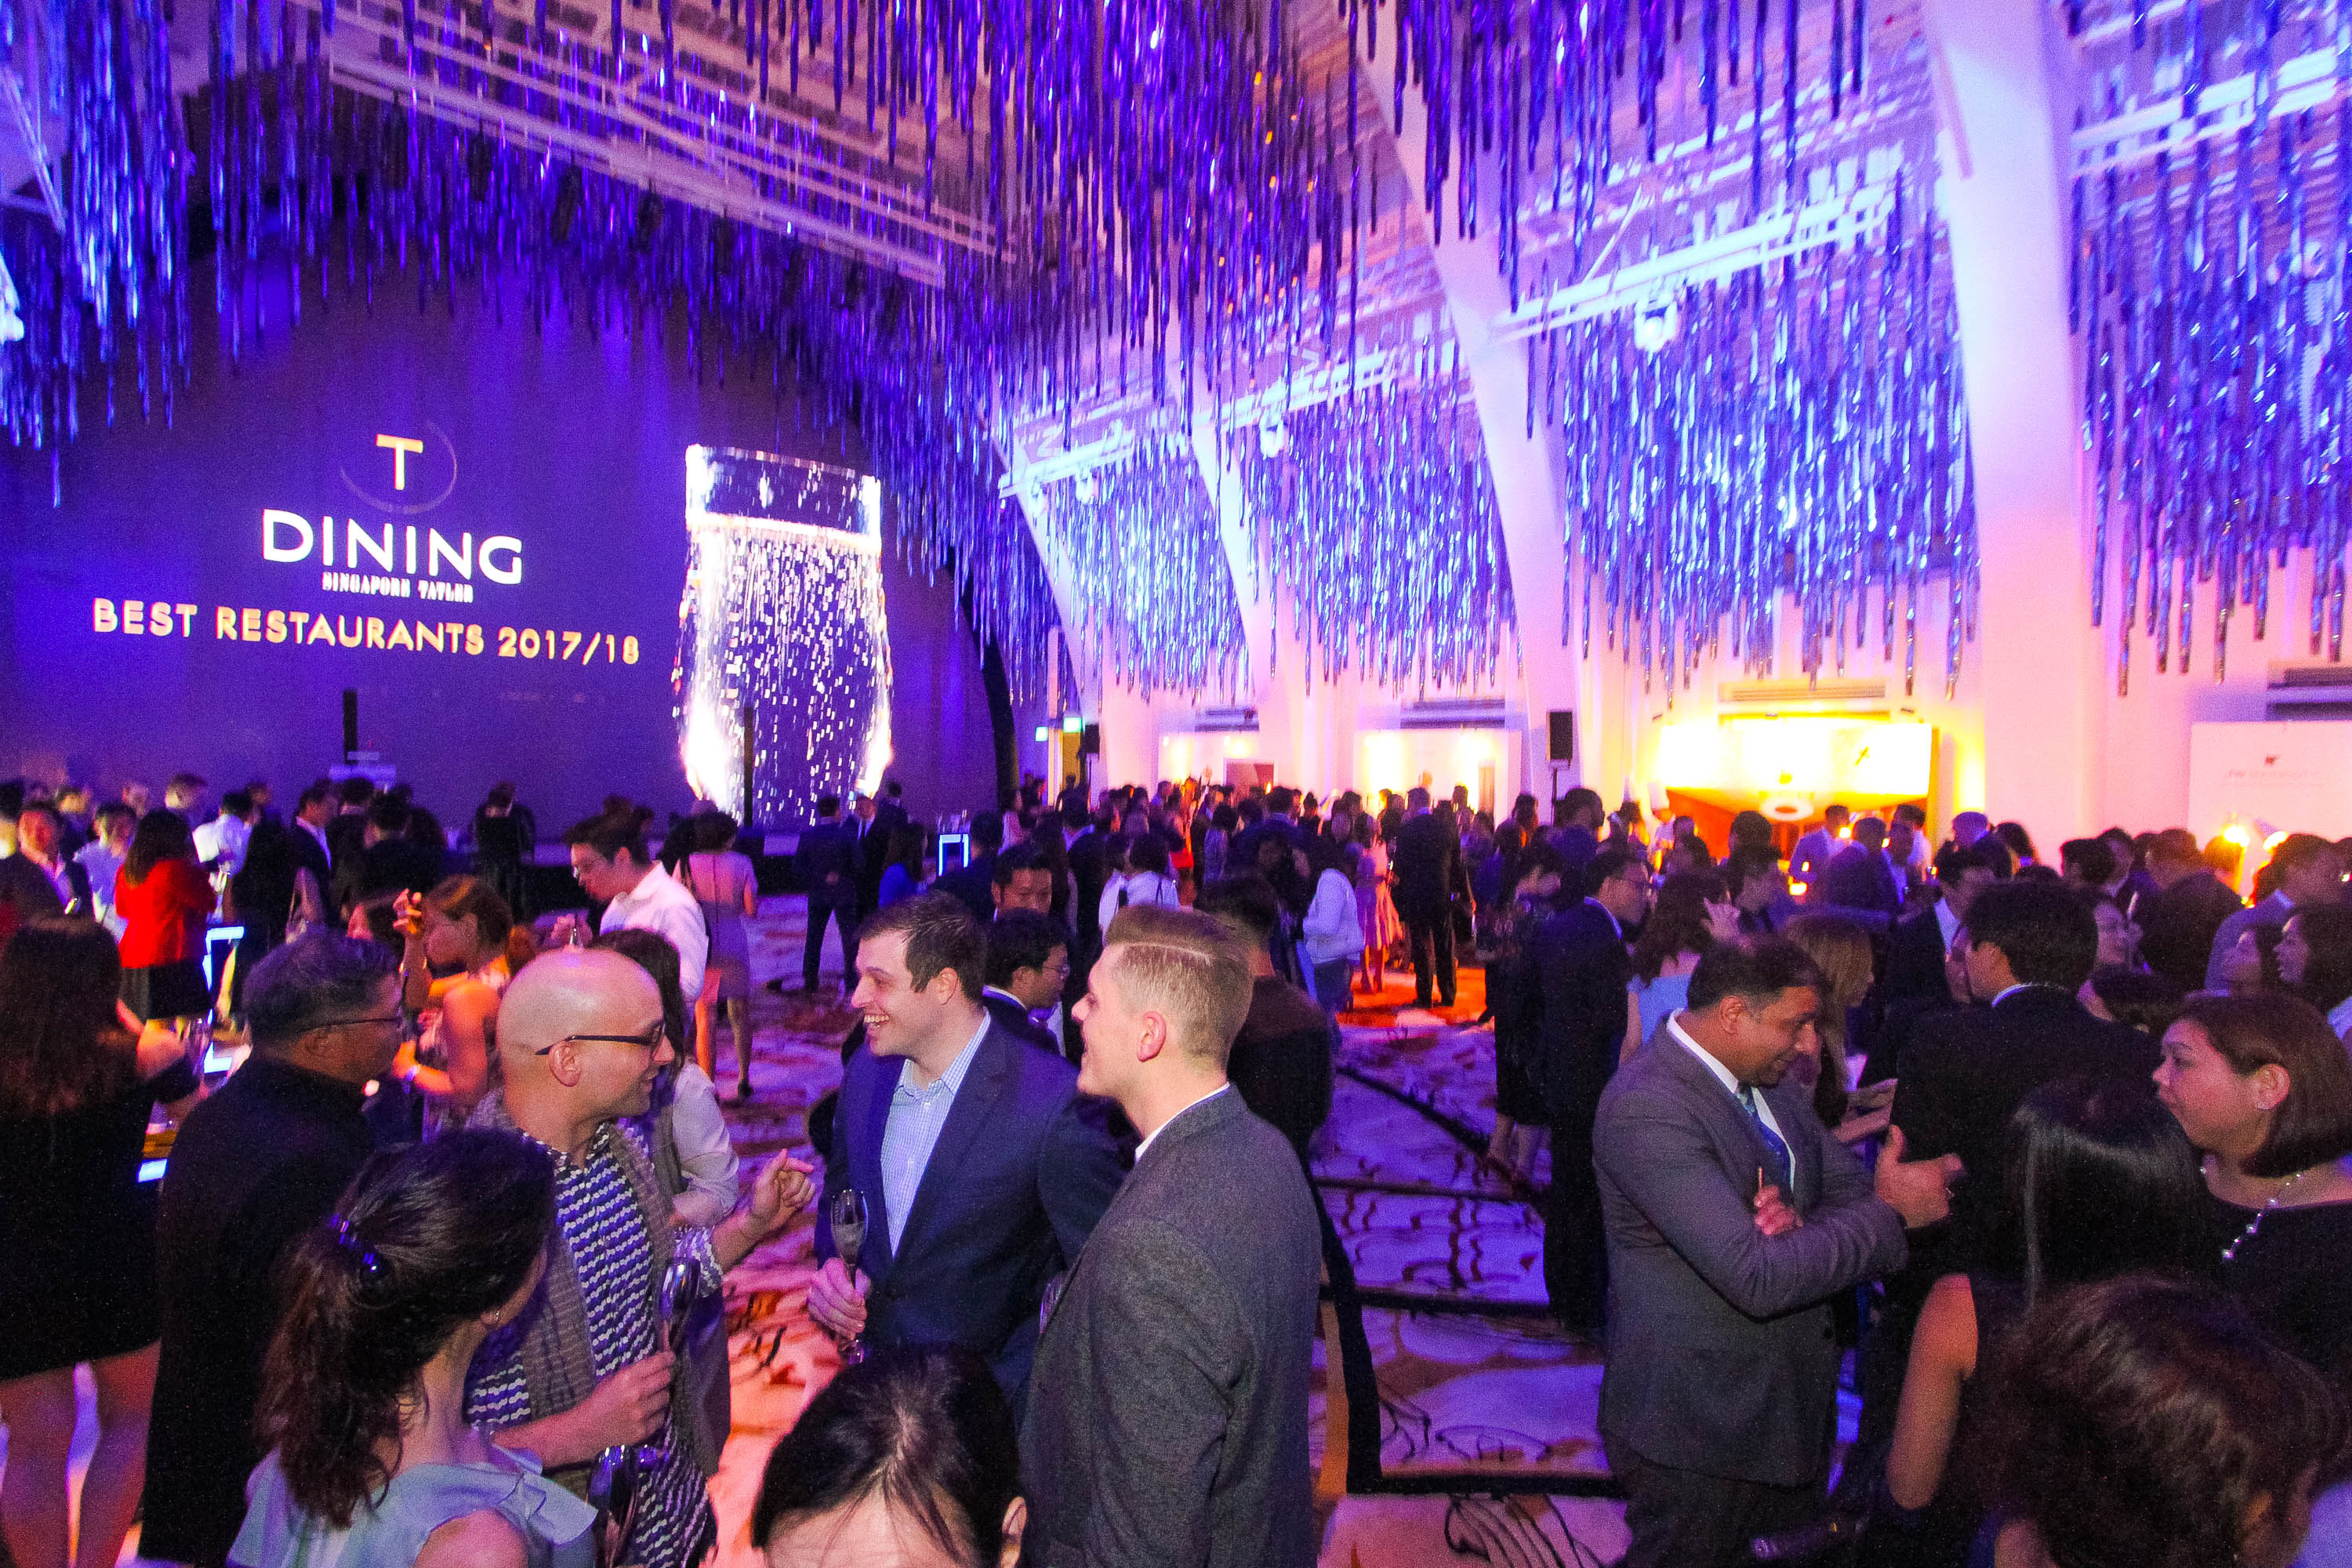 The night is bright with the industry's best chefs, gourmands and F&B elites gathered for the launch of the T.Dining Singapore Best Restaurants 2017/18